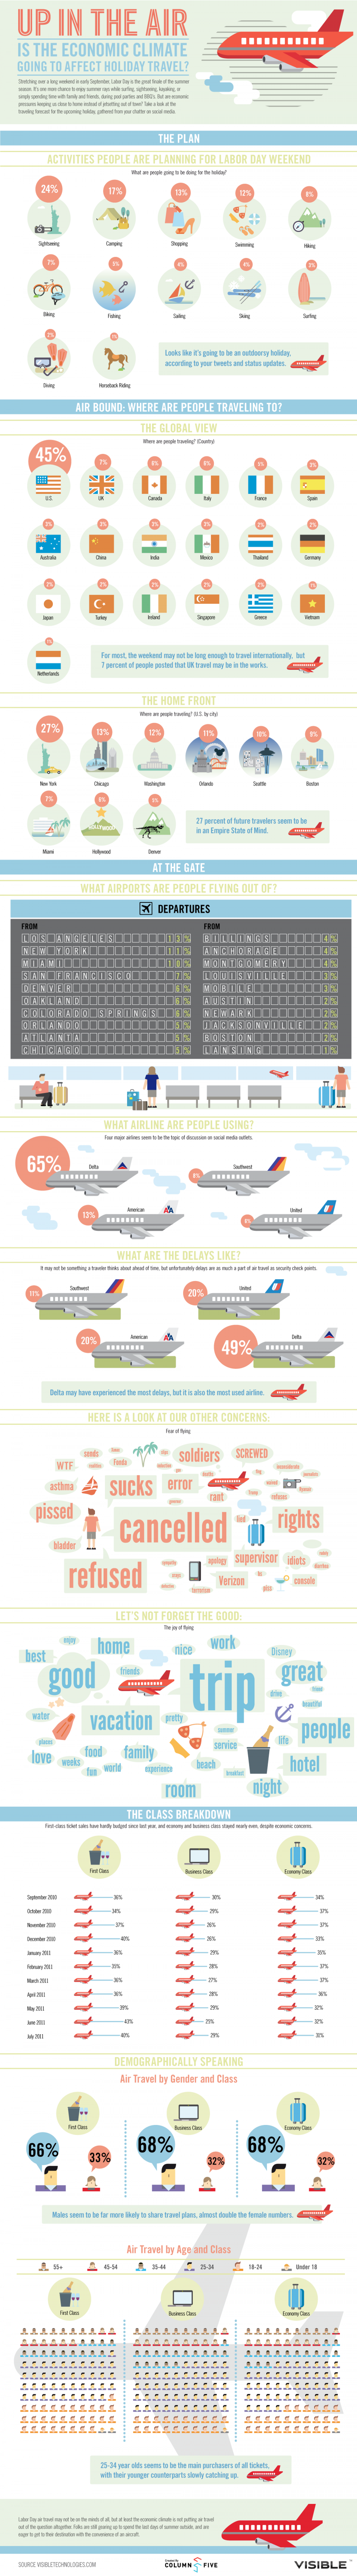 Up In The Air: Is the Economic Climate Going to Affect Holiday Travel? Infographic